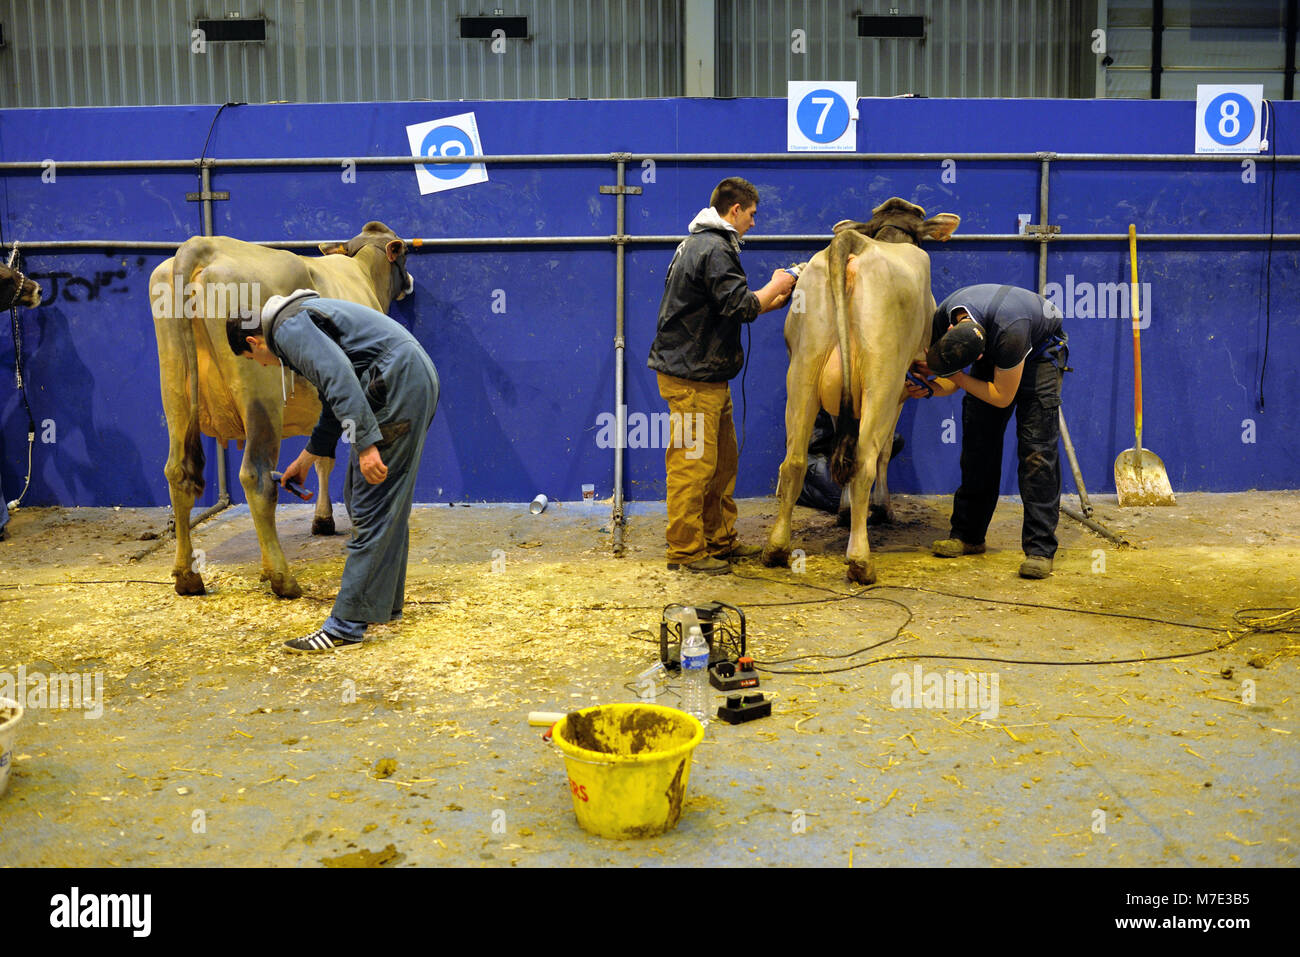 Cattle Breeders Clip and Prepare Their Prize Cows at Paris International Agricultural Show, or Salon International - Stock Image